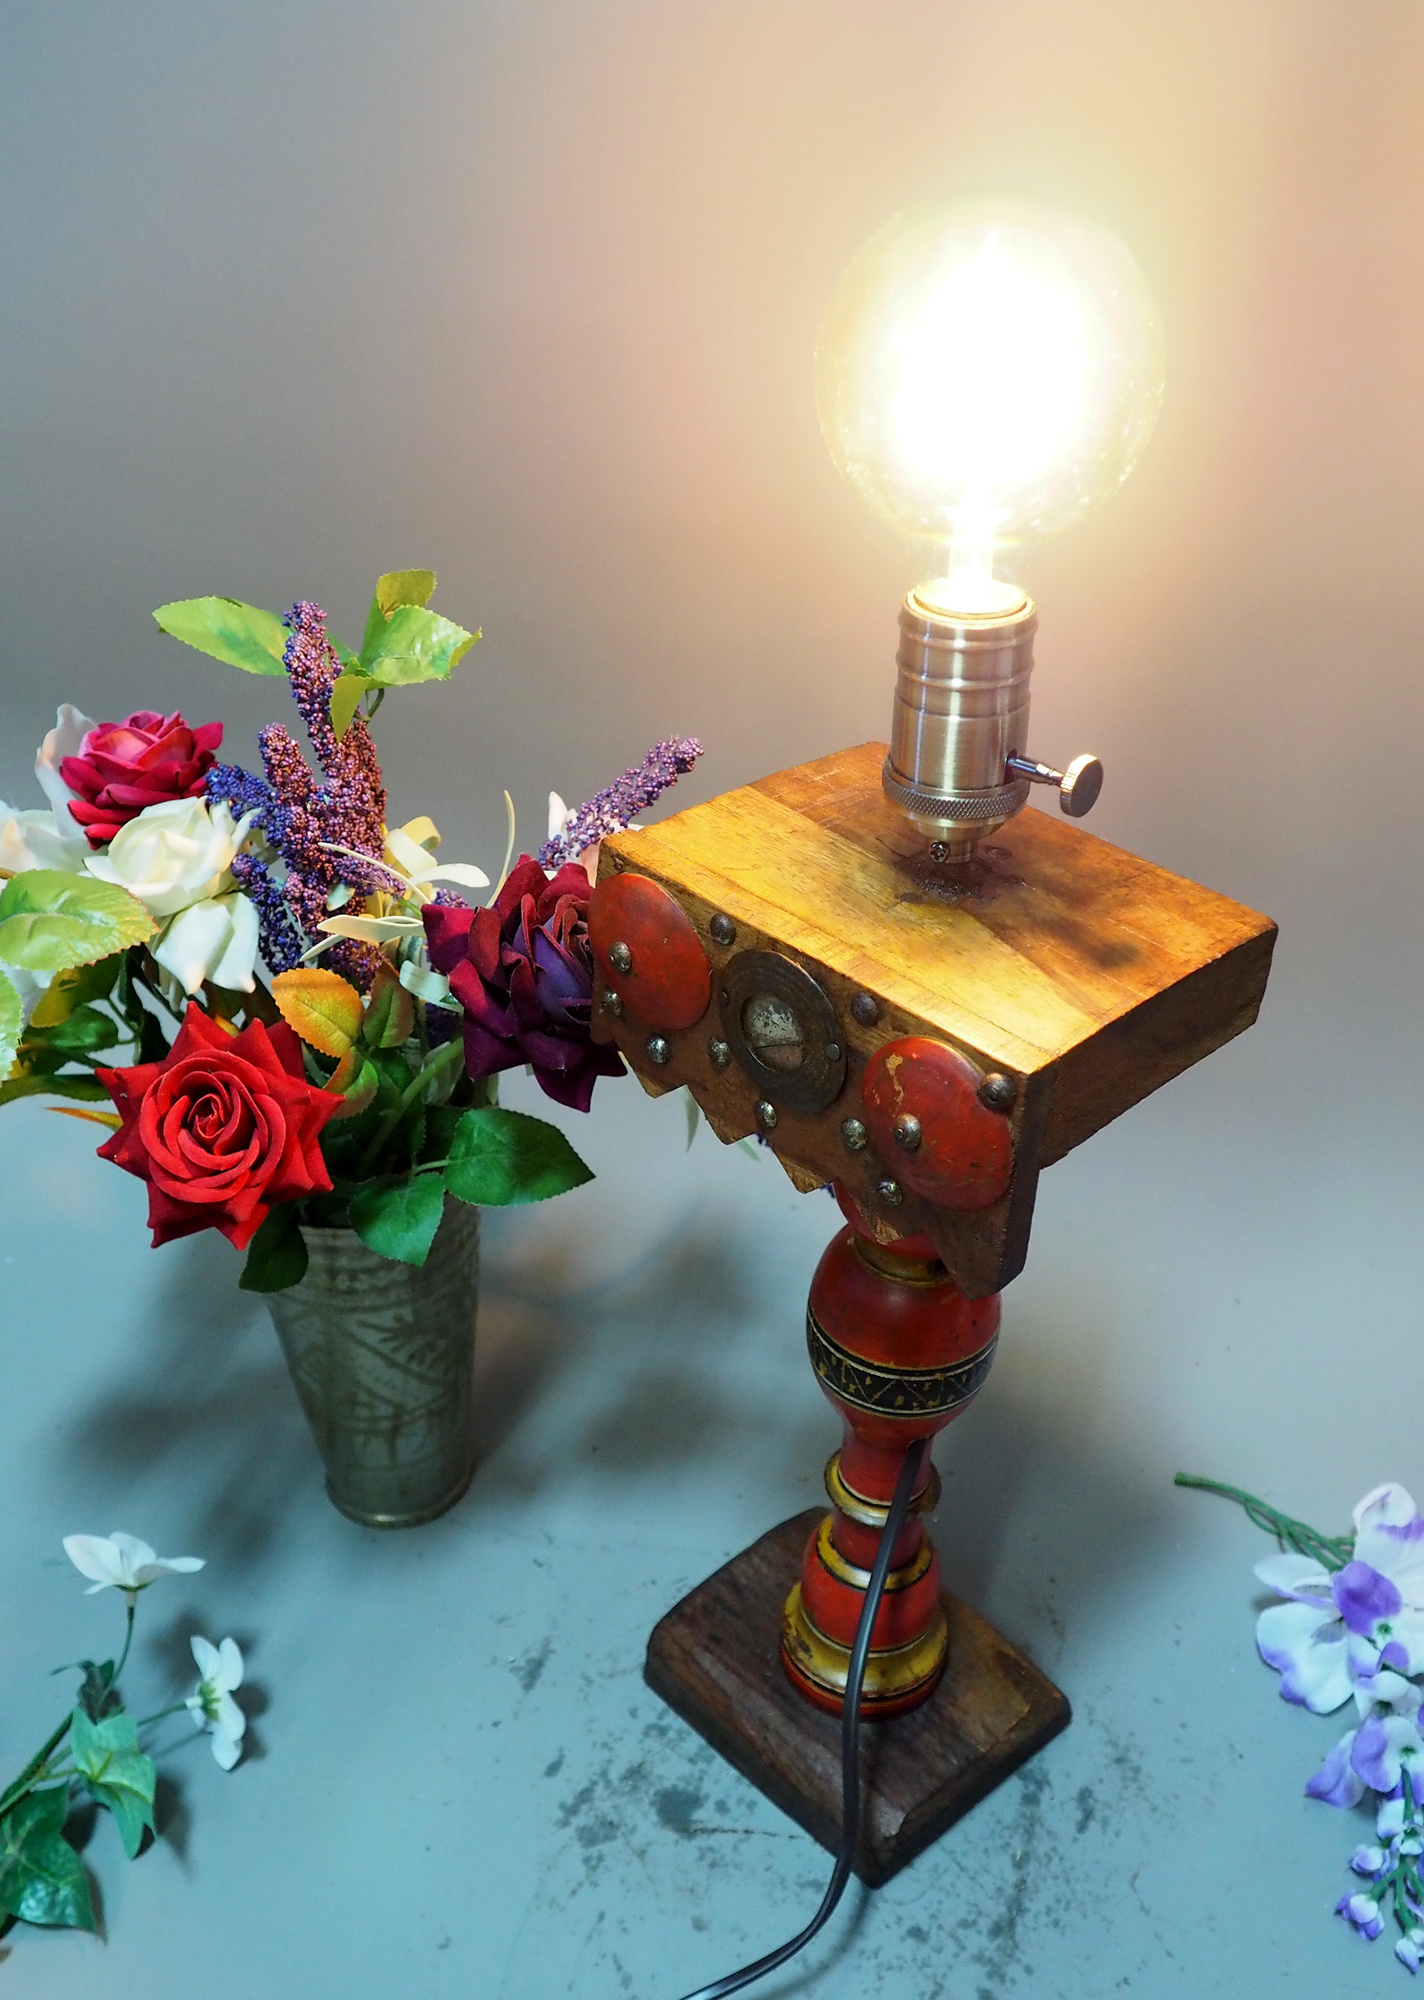 Antique handpainted stunning Vintage Lacquerware wooden Table Lamp with Vintage light fitting from Afghanistan / Pakistan No:21/5